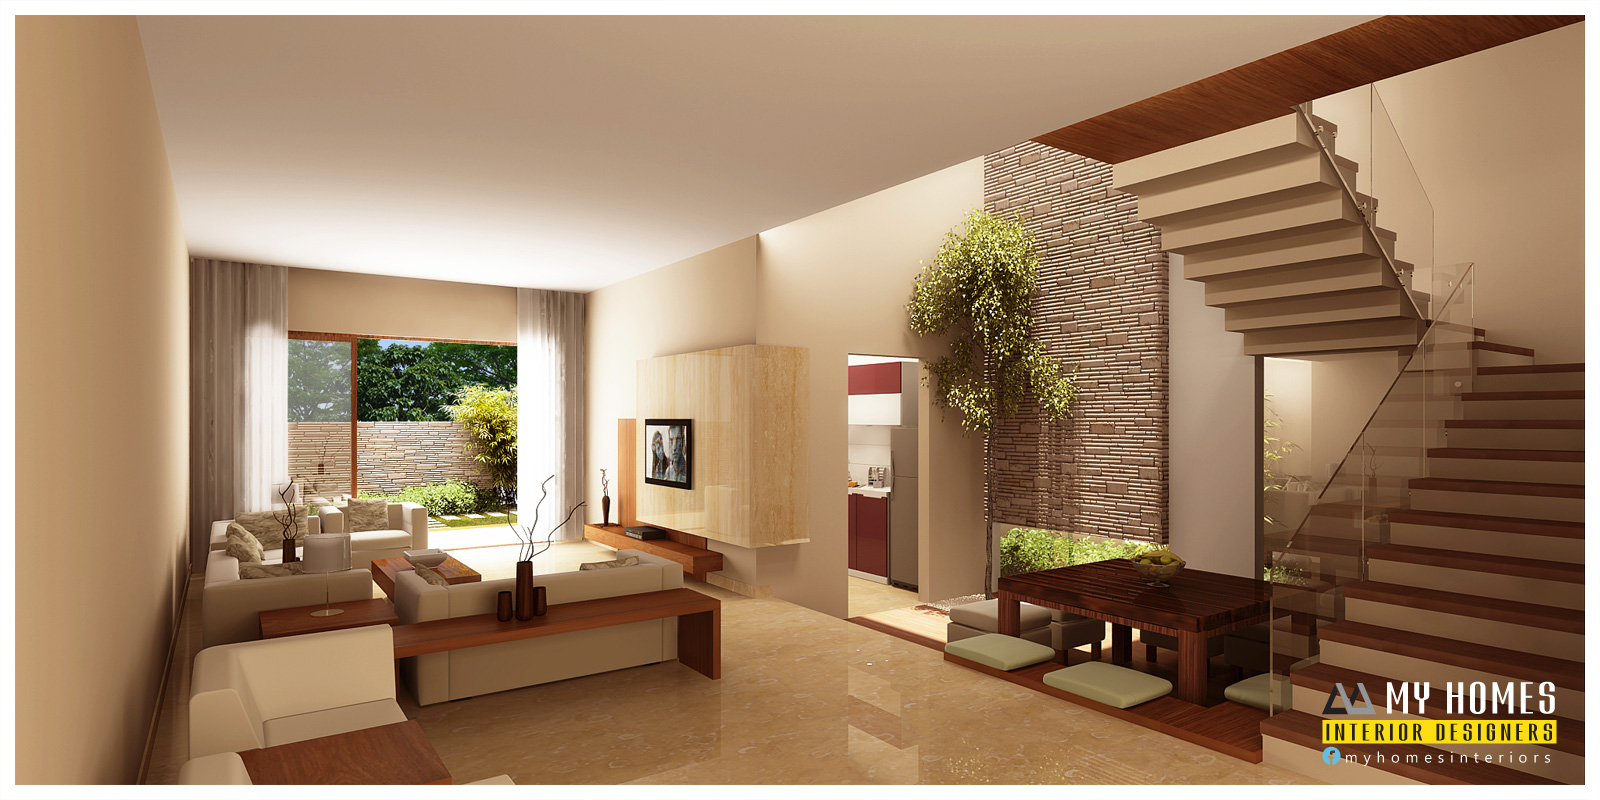 Kerala interior design ideas from designing company thrissur for Interior designs pictures